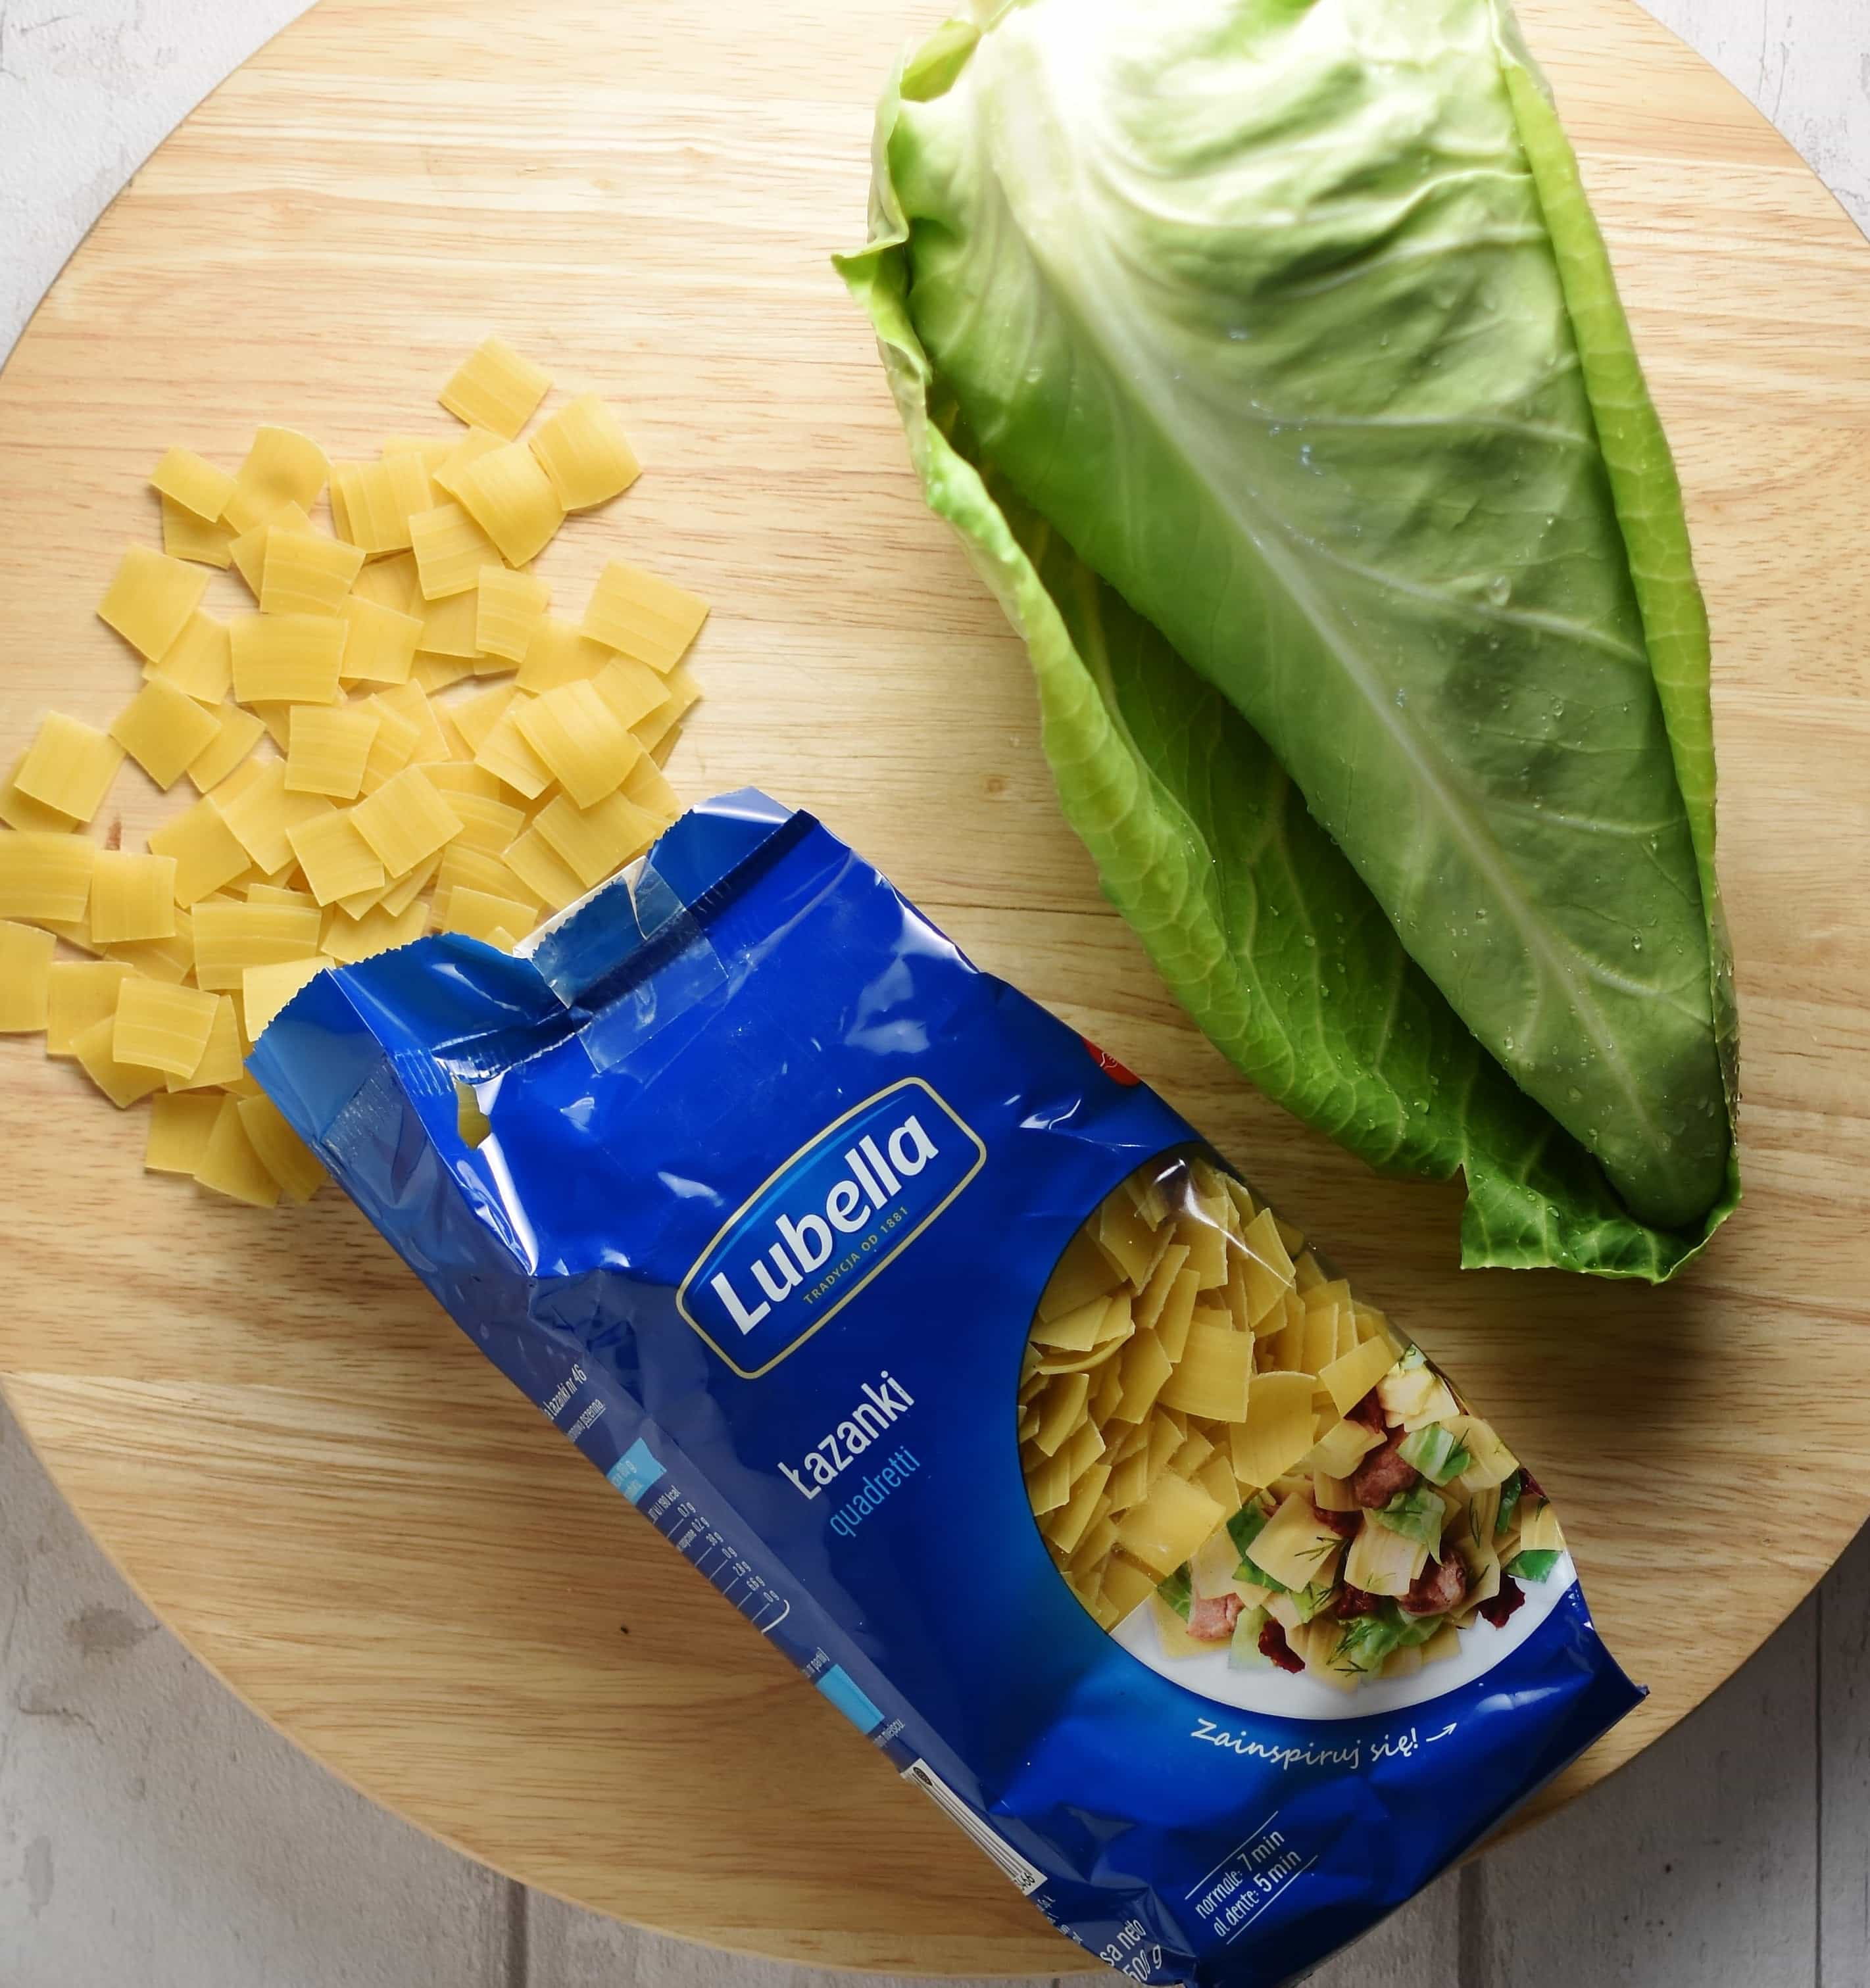 Top down view of Polish lazanki pasta in package, with pointed cabbage on top of round wooden board.